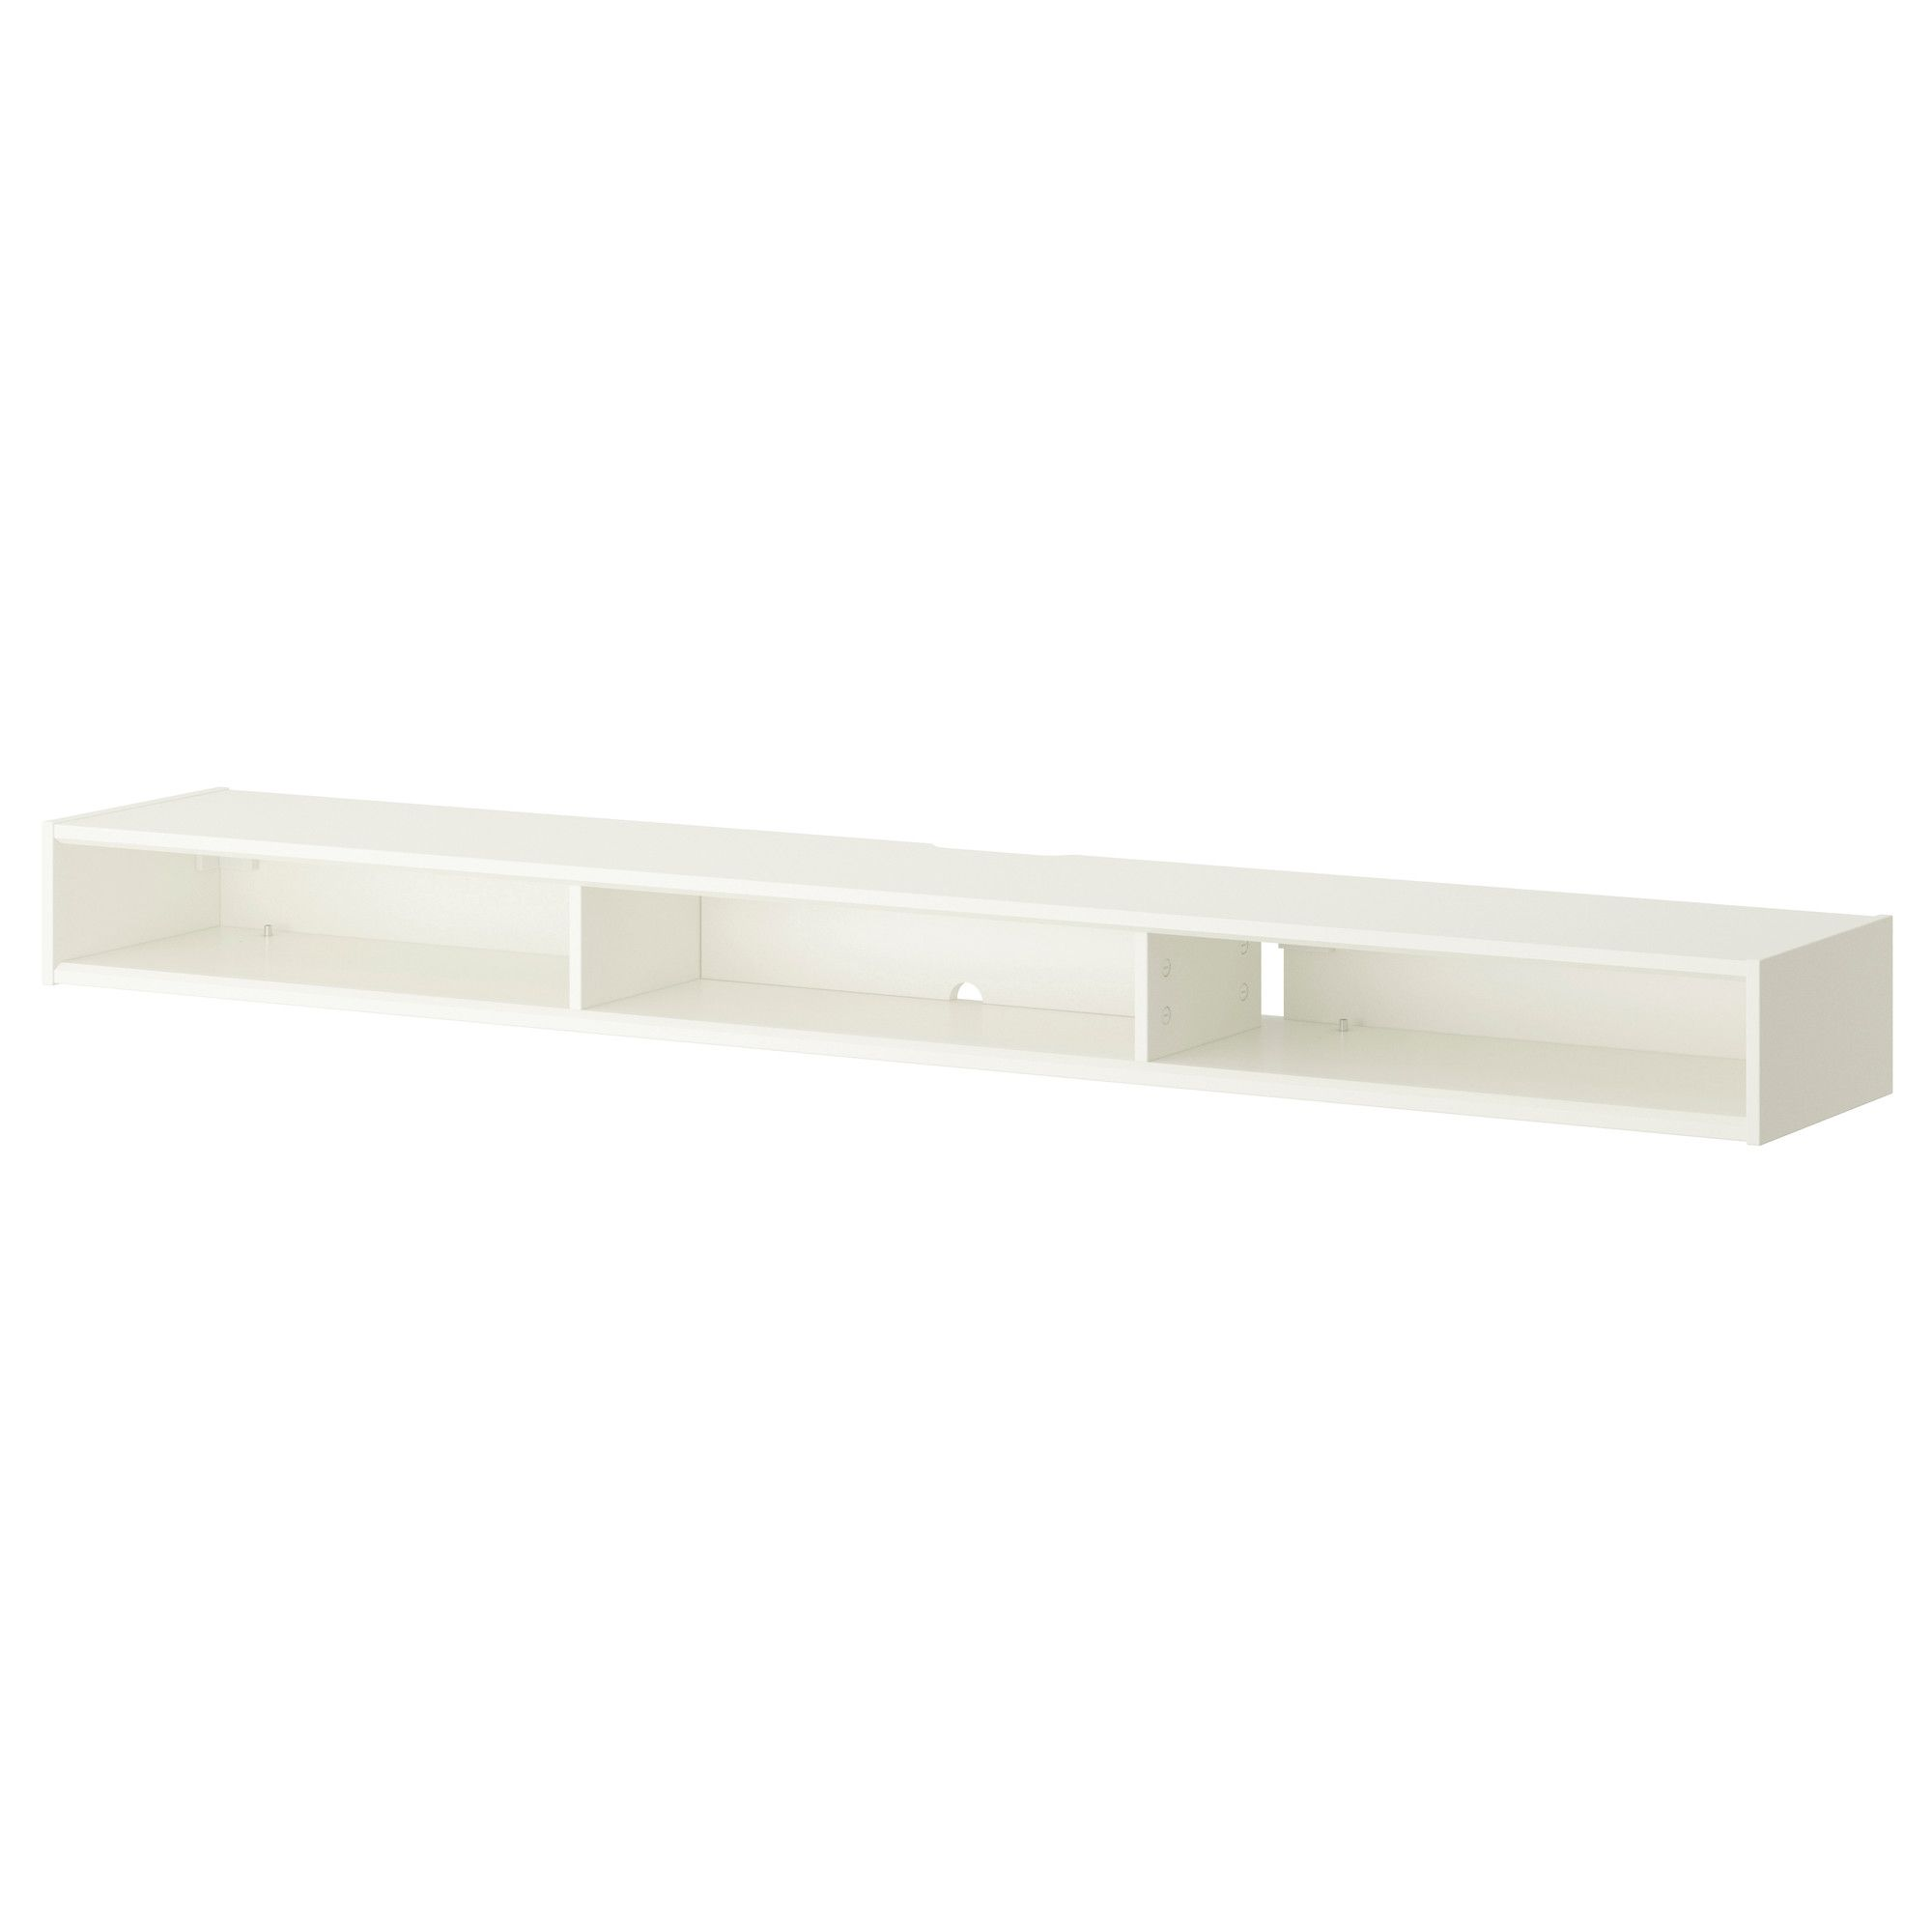 RamsÄtra Media Shelf Ikea Another Option Tv Will Need To Be Wall